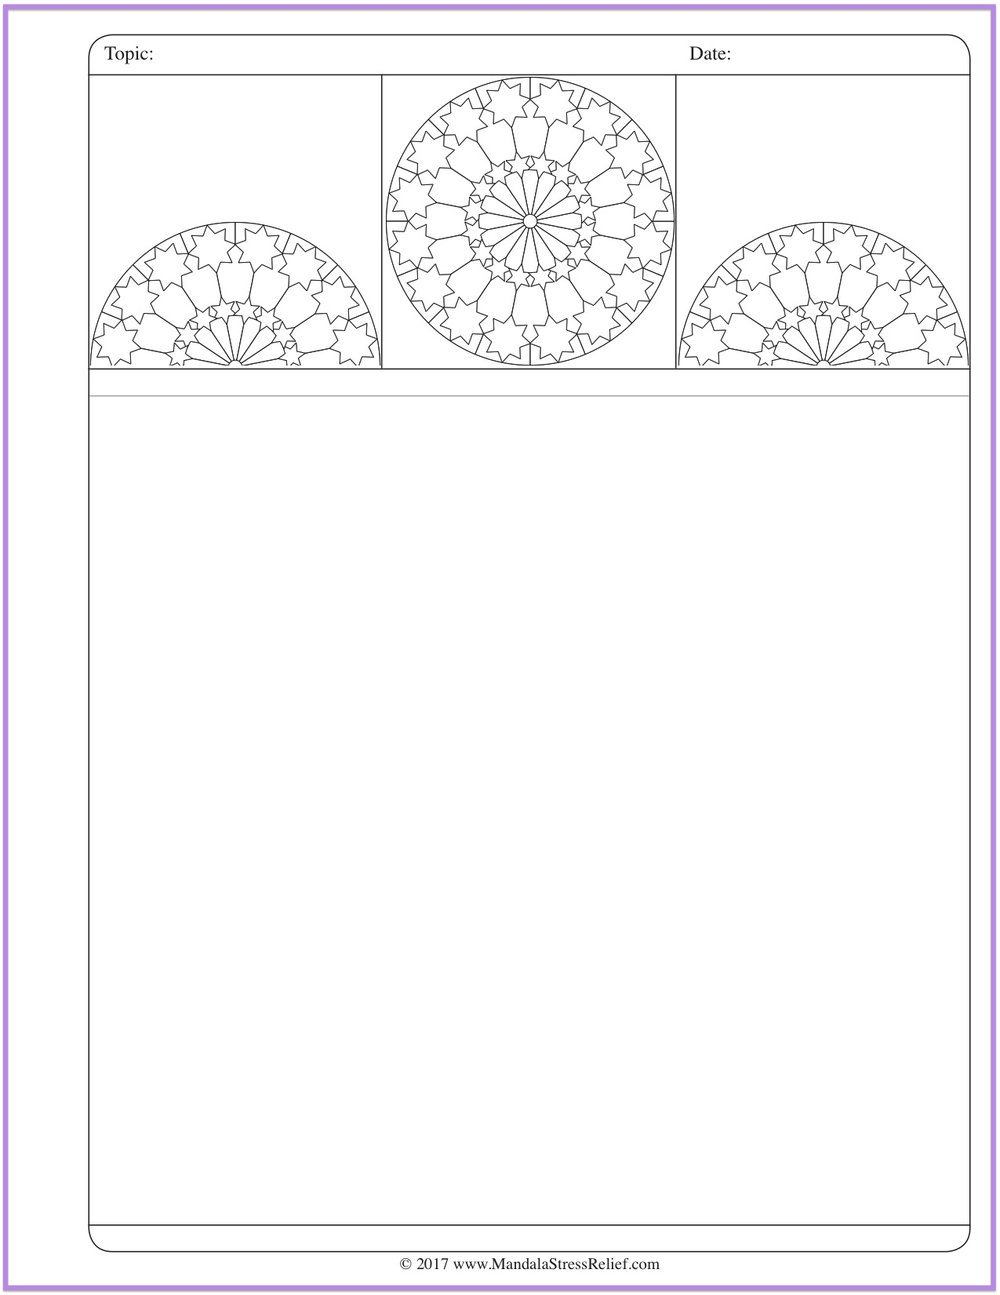 Download  this new Mandala Colour-Journalling page.